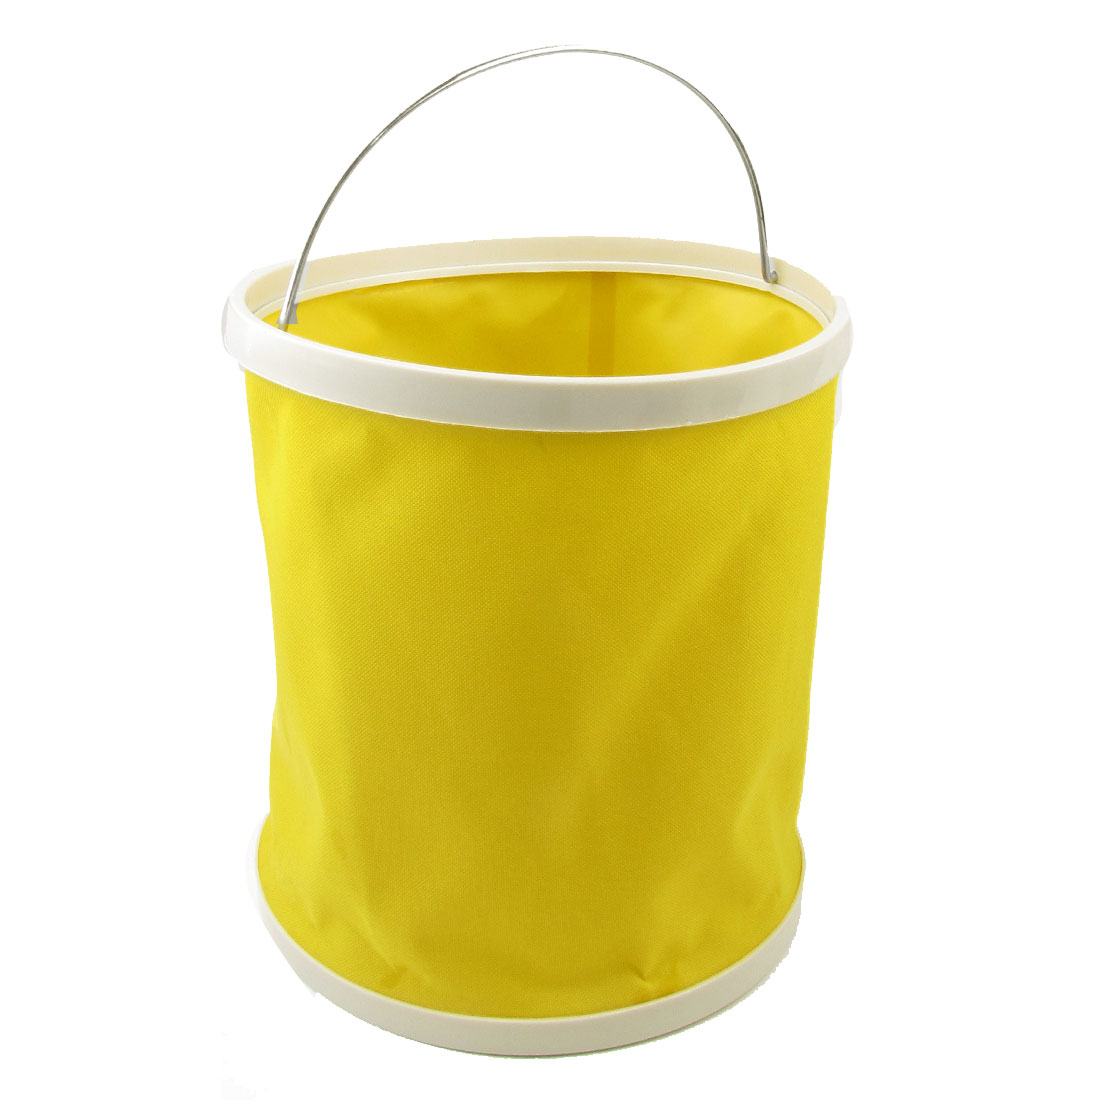 Vehicle Cars Foldable Foldaway Bucket Container Trash Bin Yellow 9L